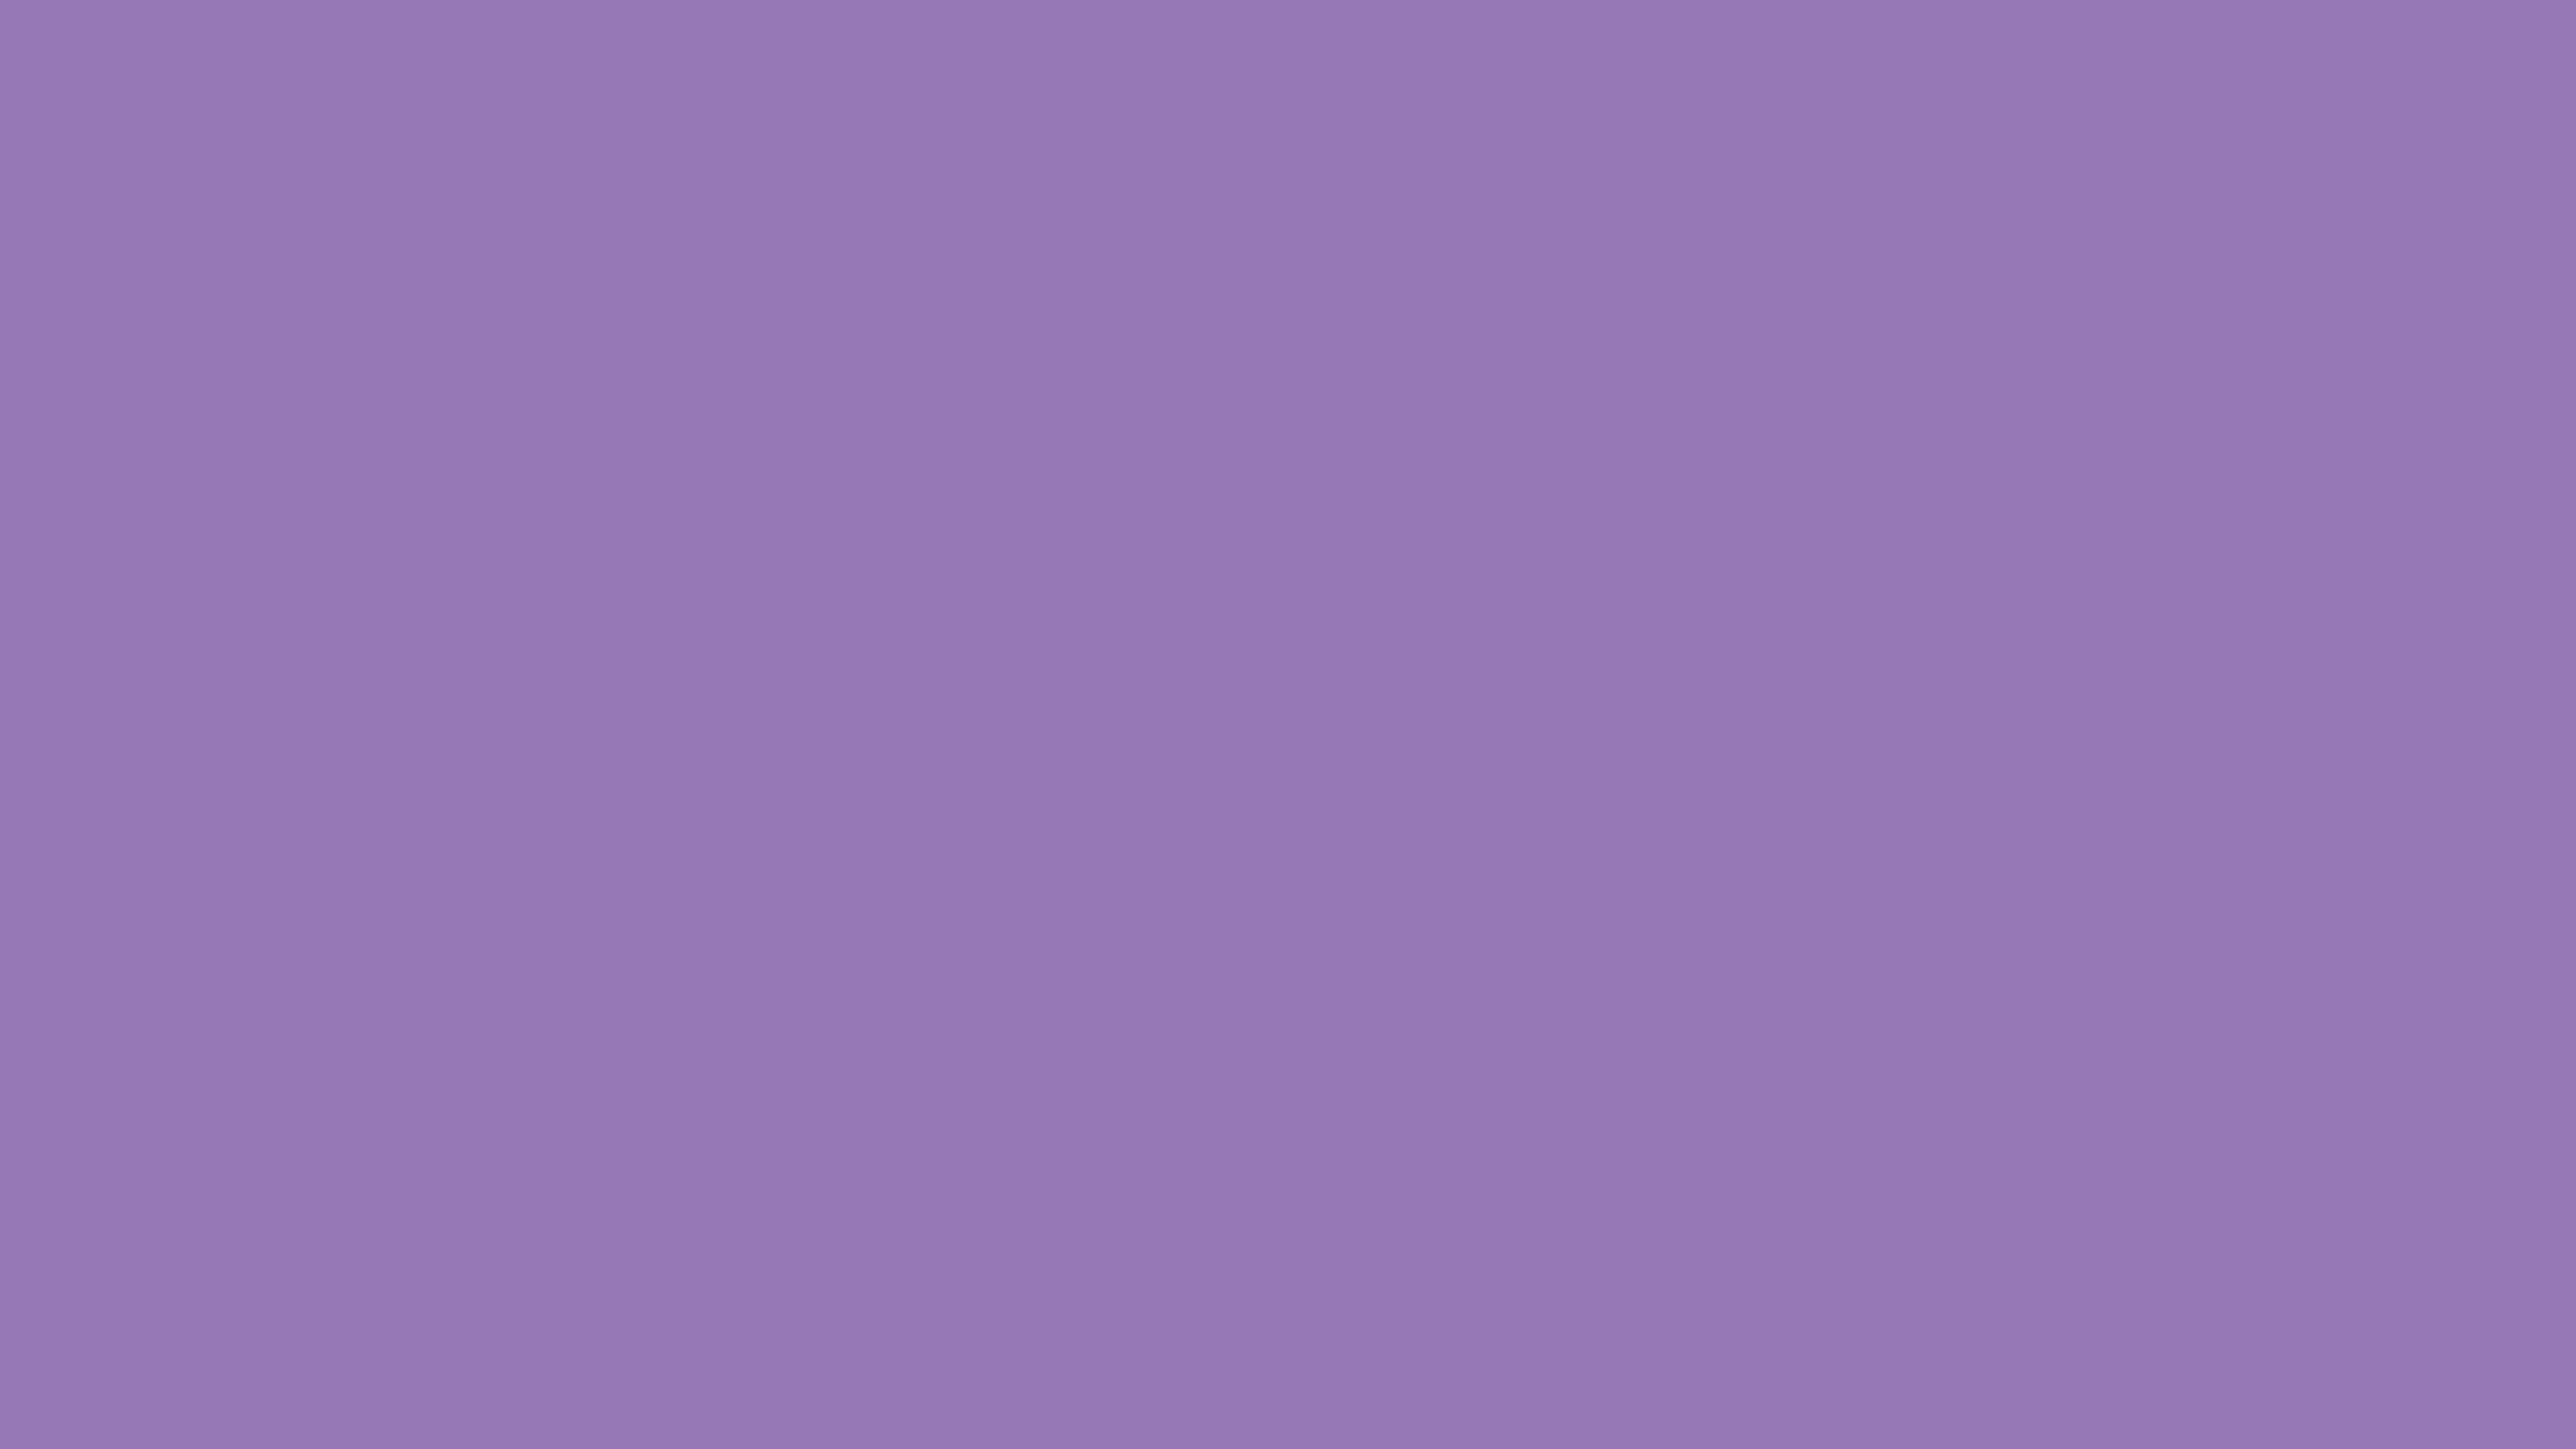 4096x2304 Purple Mountain Majesty Solid Color Background